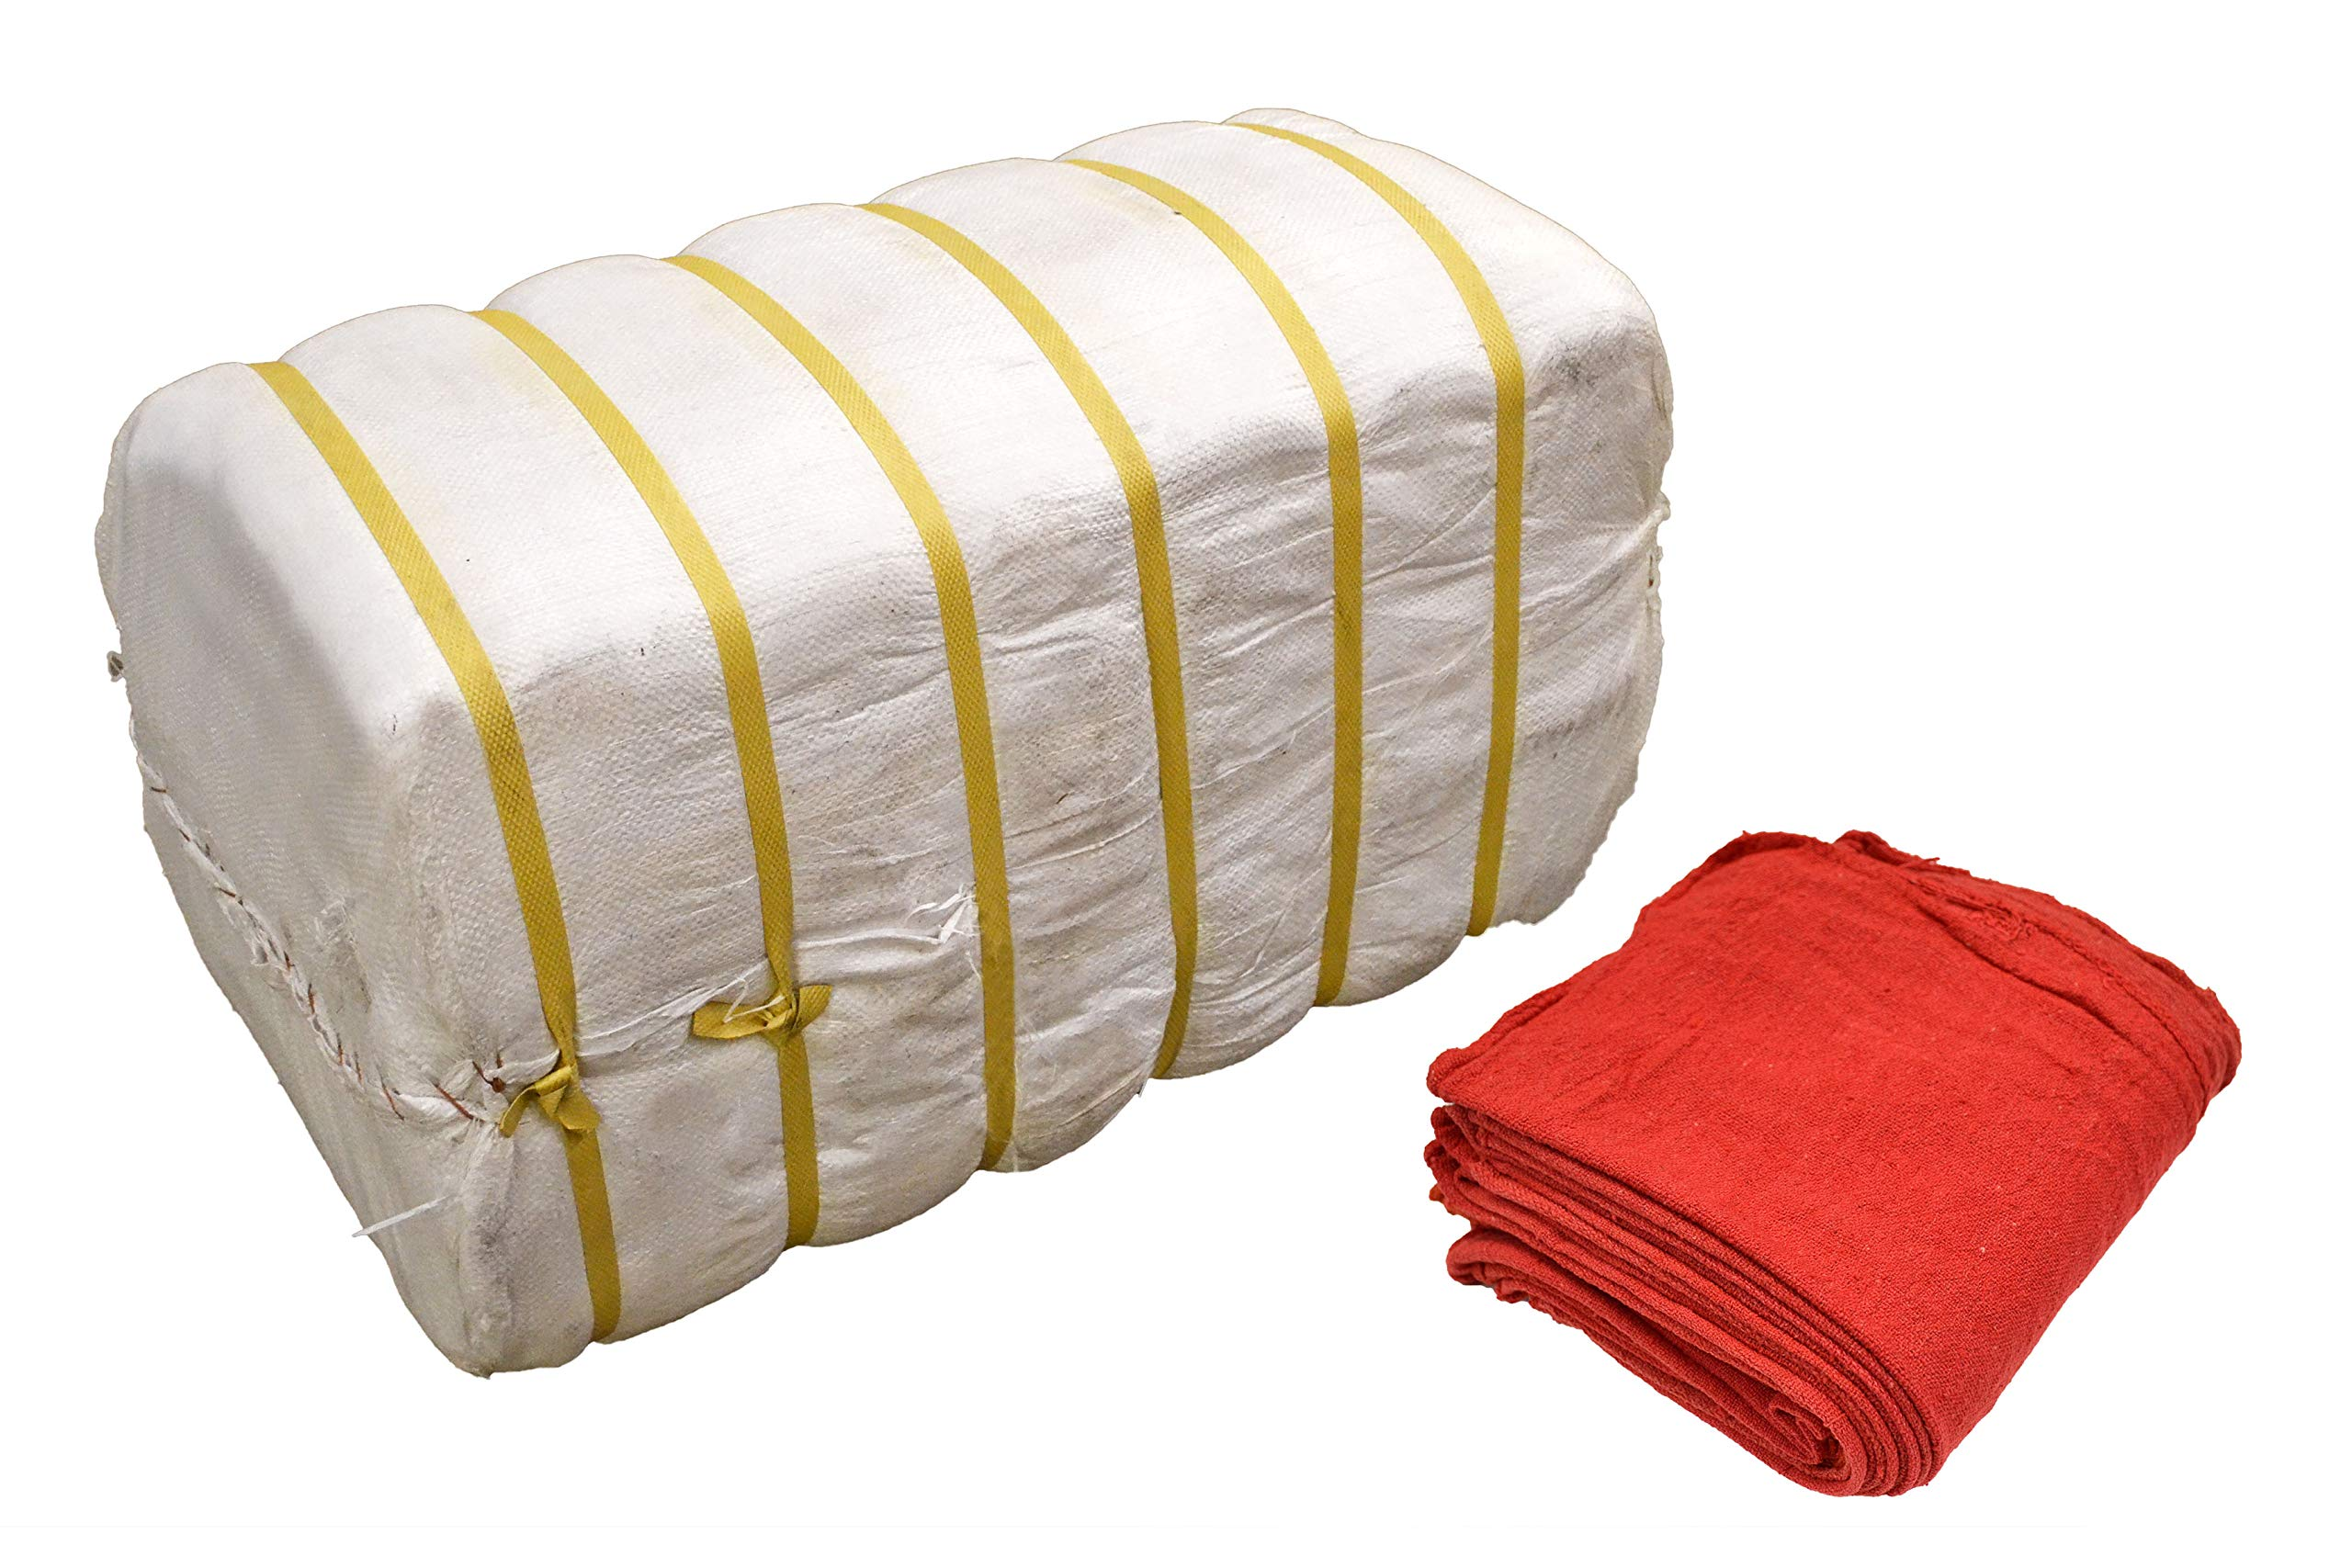 Tuf-Clean 21818 Shop Towels, 100% Cotton, Red, Bale of 2,500